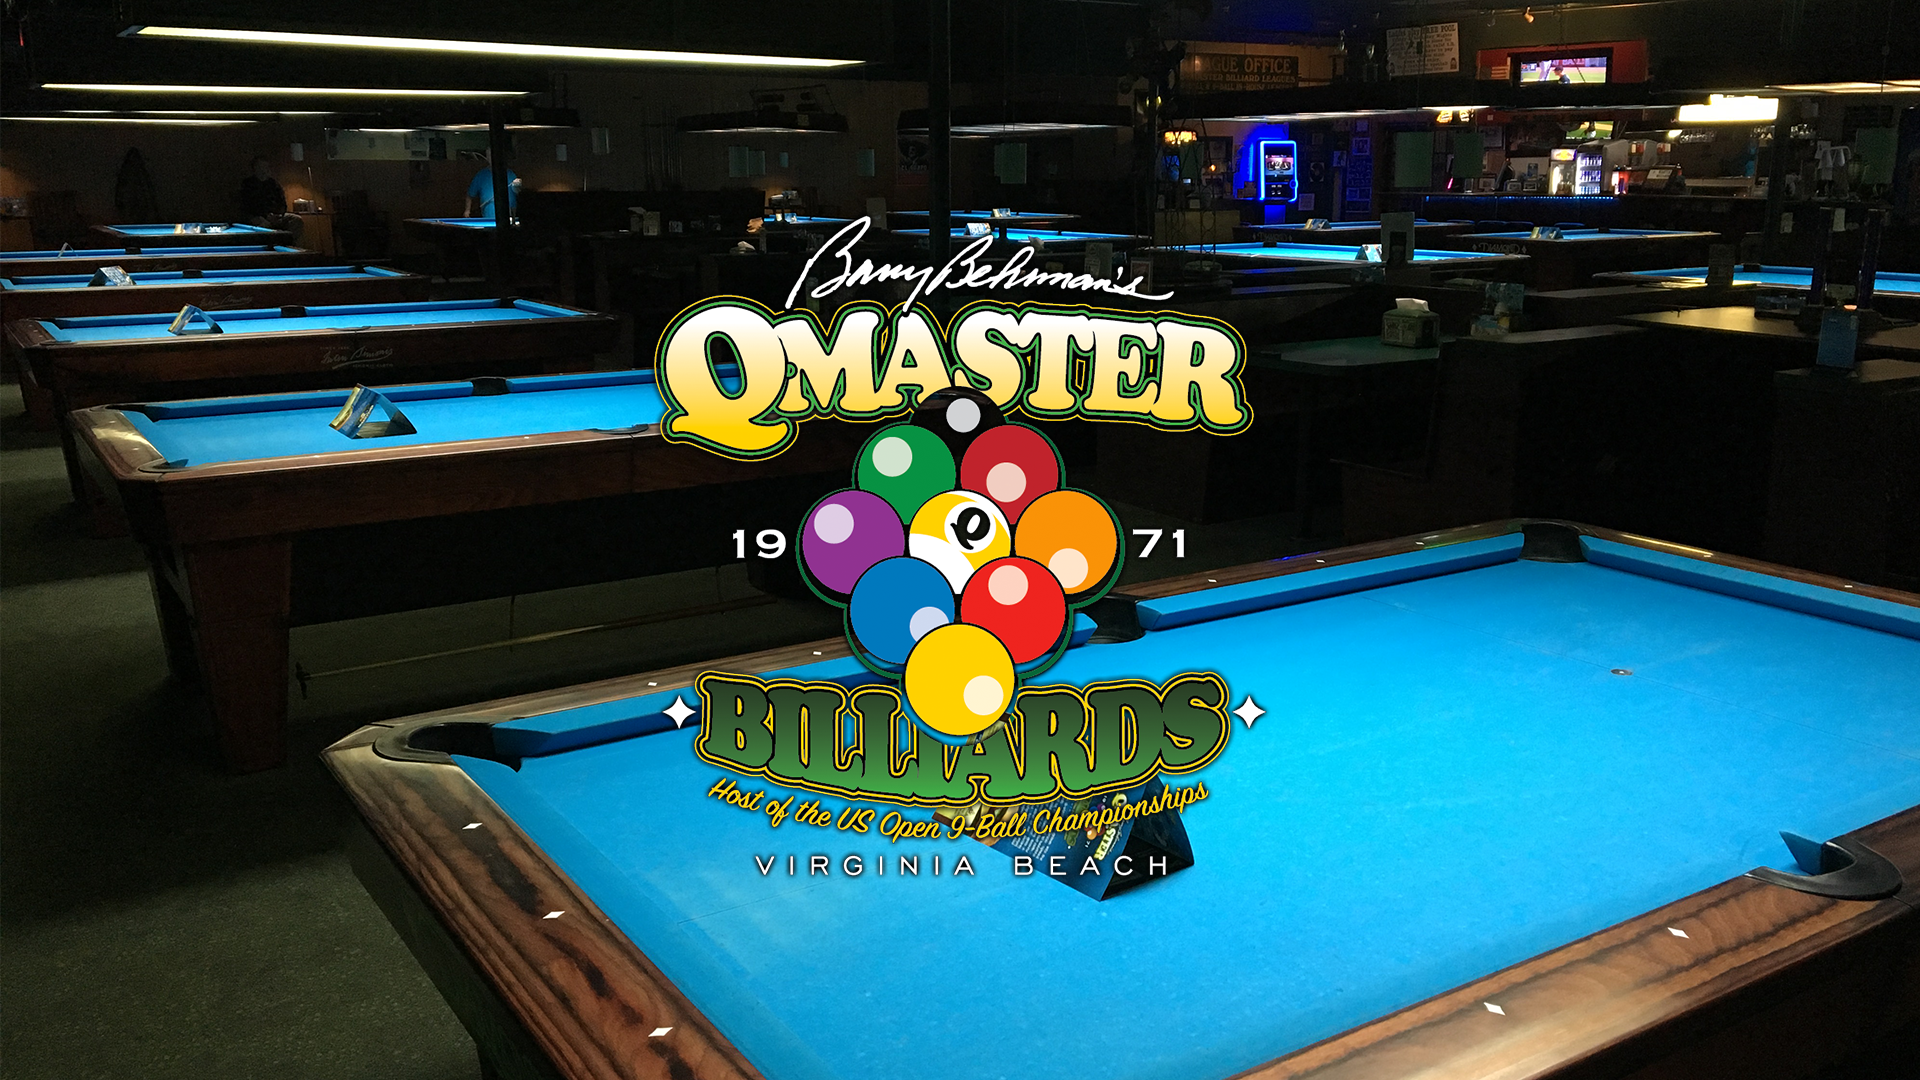 Billiard Room Virginia Beach QMaster Billiards - Cue master pool table